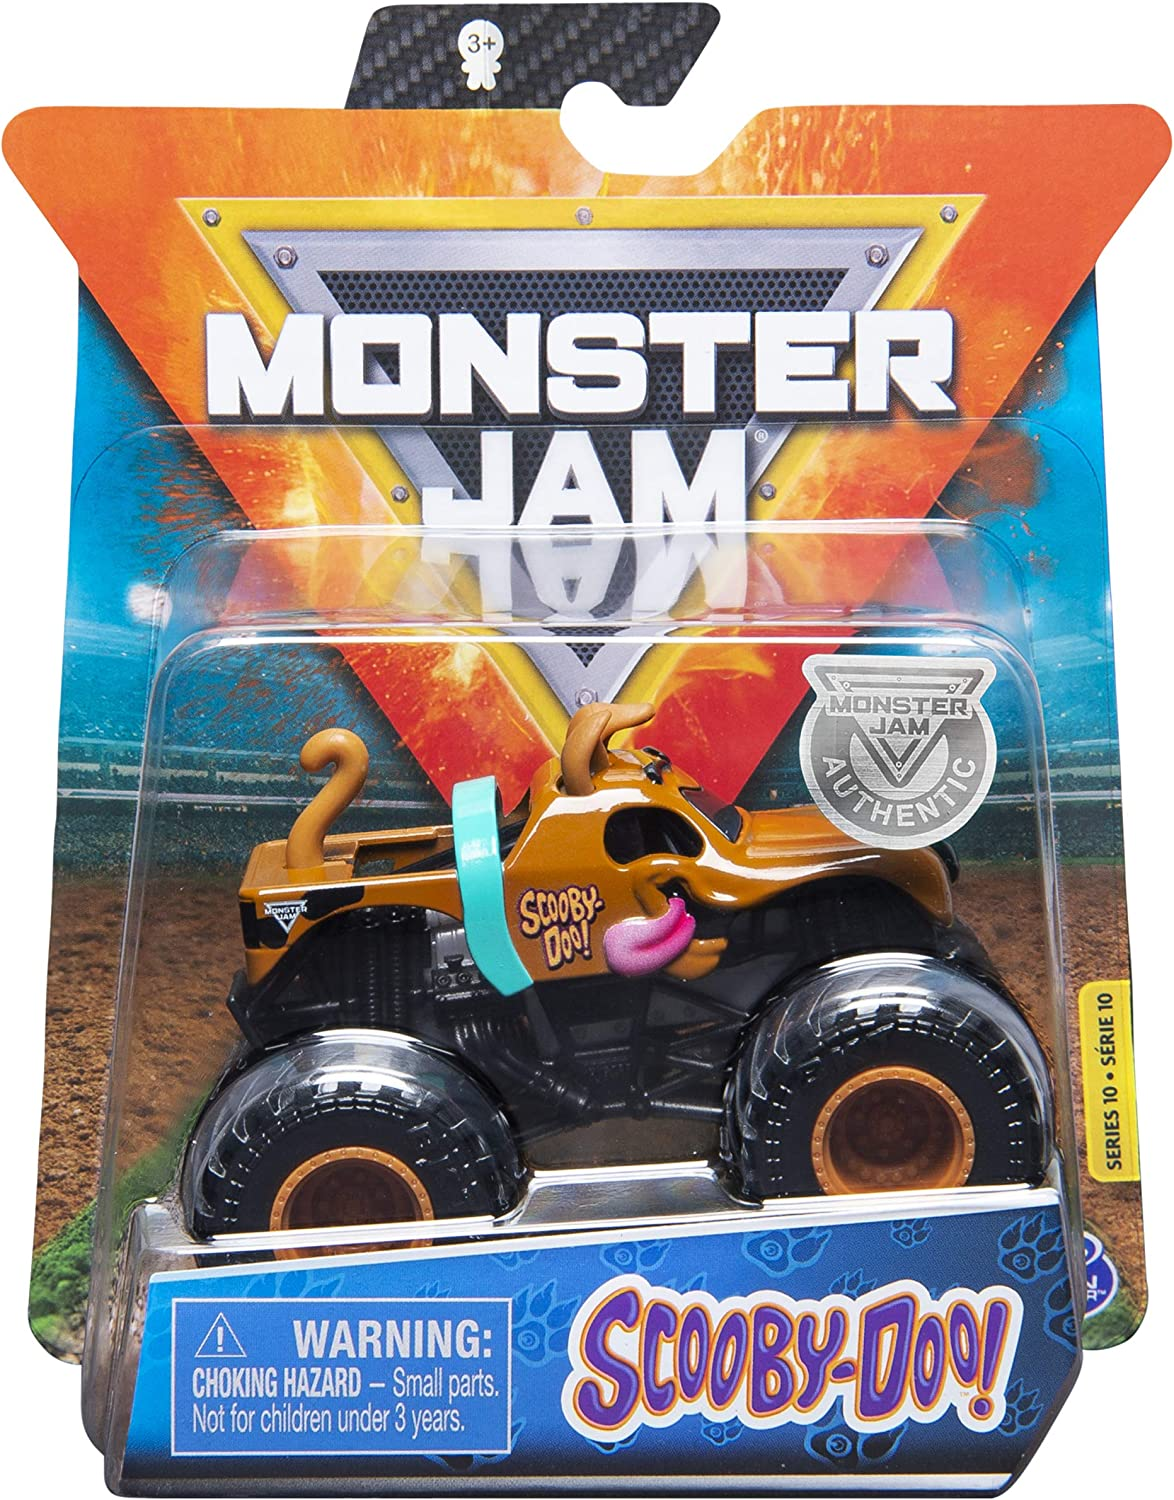 Amazon Com Monster Jam 2020 Spin Master 1 64 Diecast Monster Truck With Wristband Ruff Crowd Scooby Doo Toys Games